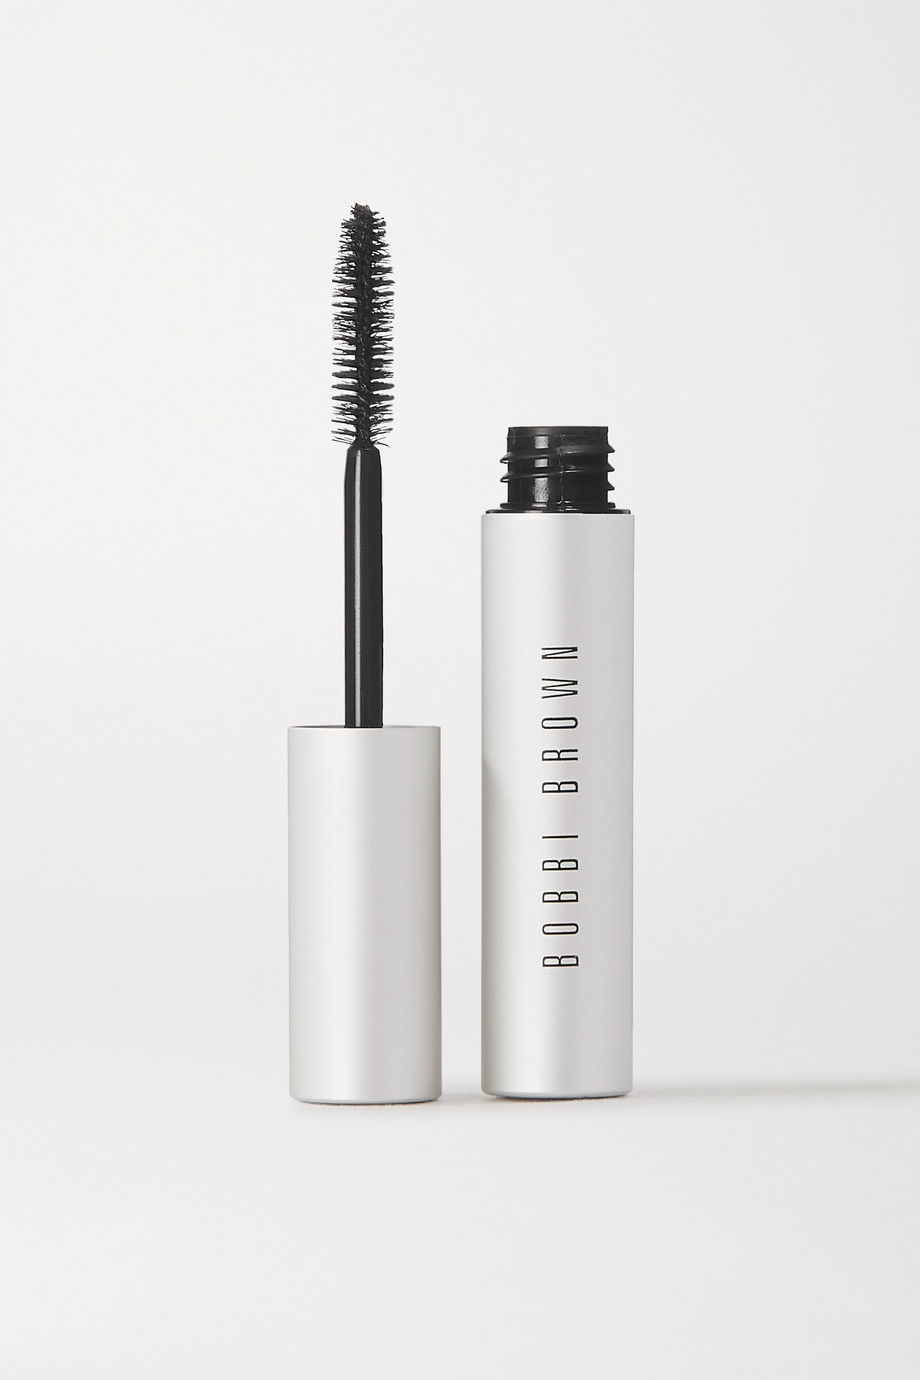 Bobbi Brown Smokey Eye Mascara – Black – Mascara